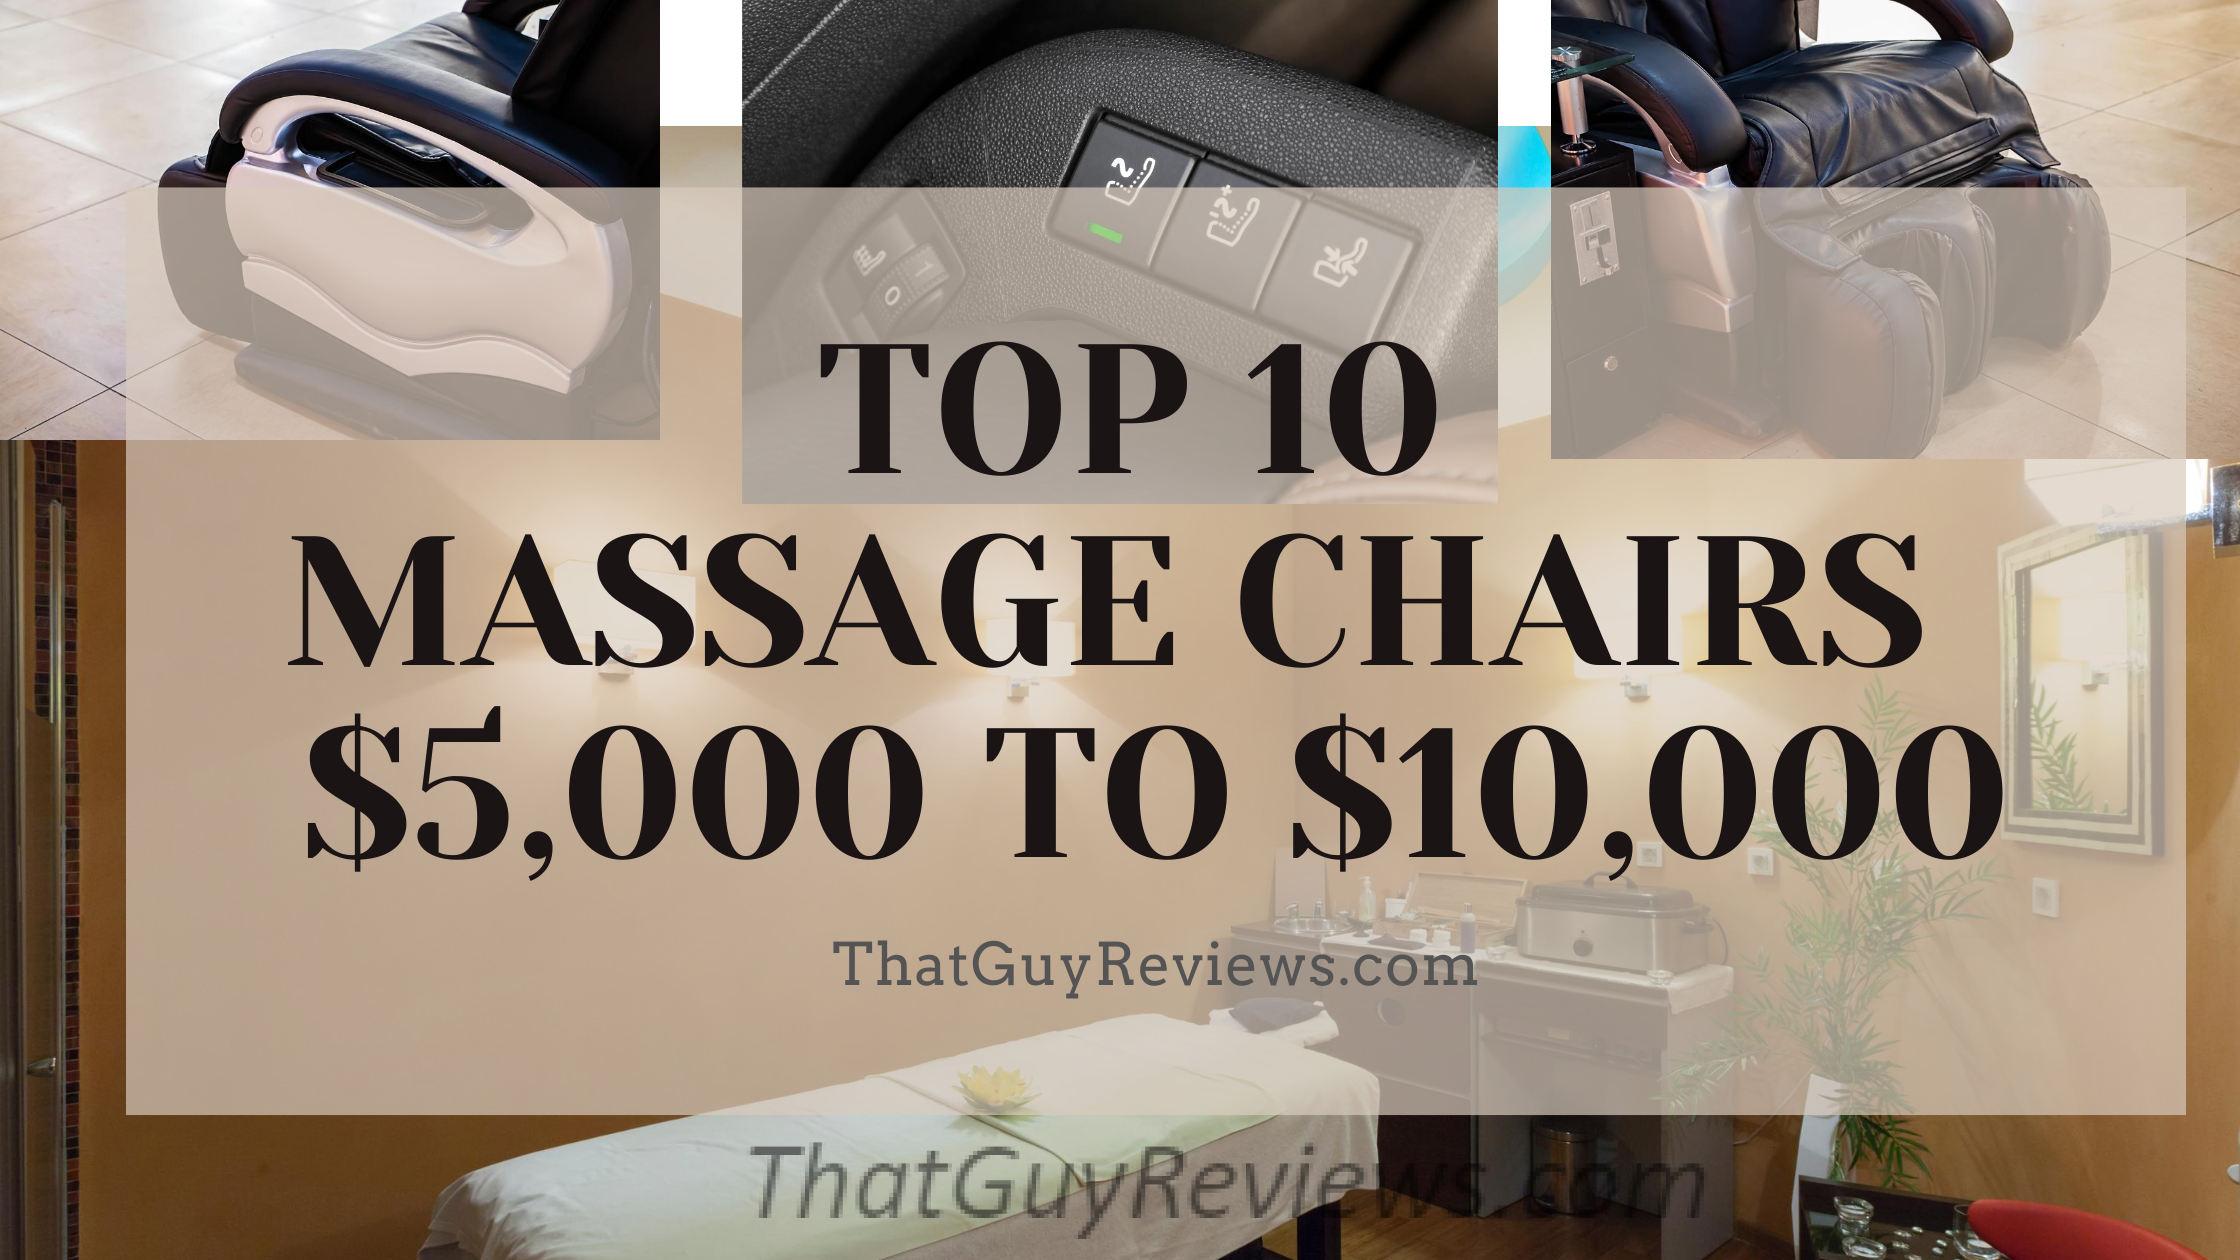 Best Massage Chairs $5,000 to $10,000 in 2021